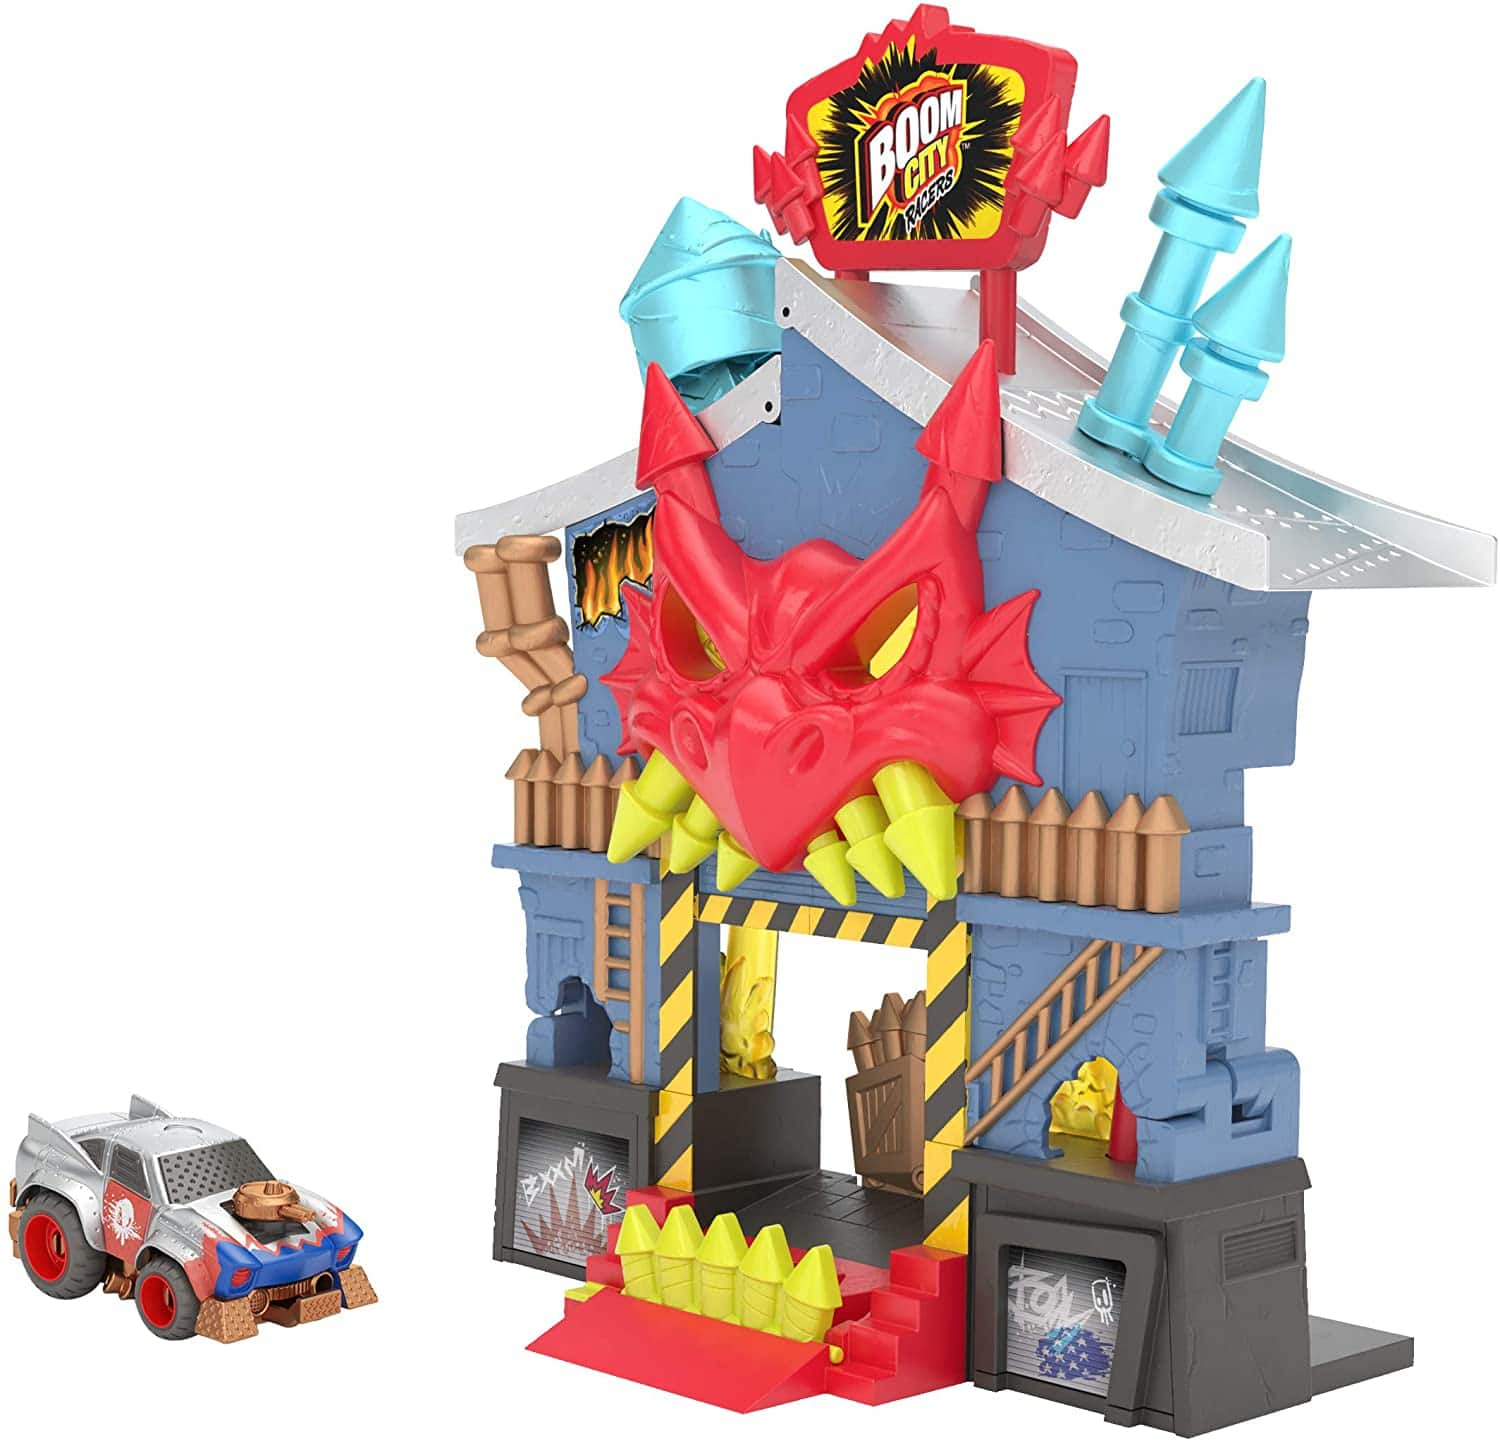 Boom City Racers Fireworks Factory 3-in-1 Transforming Playset $8.98 at Amazon